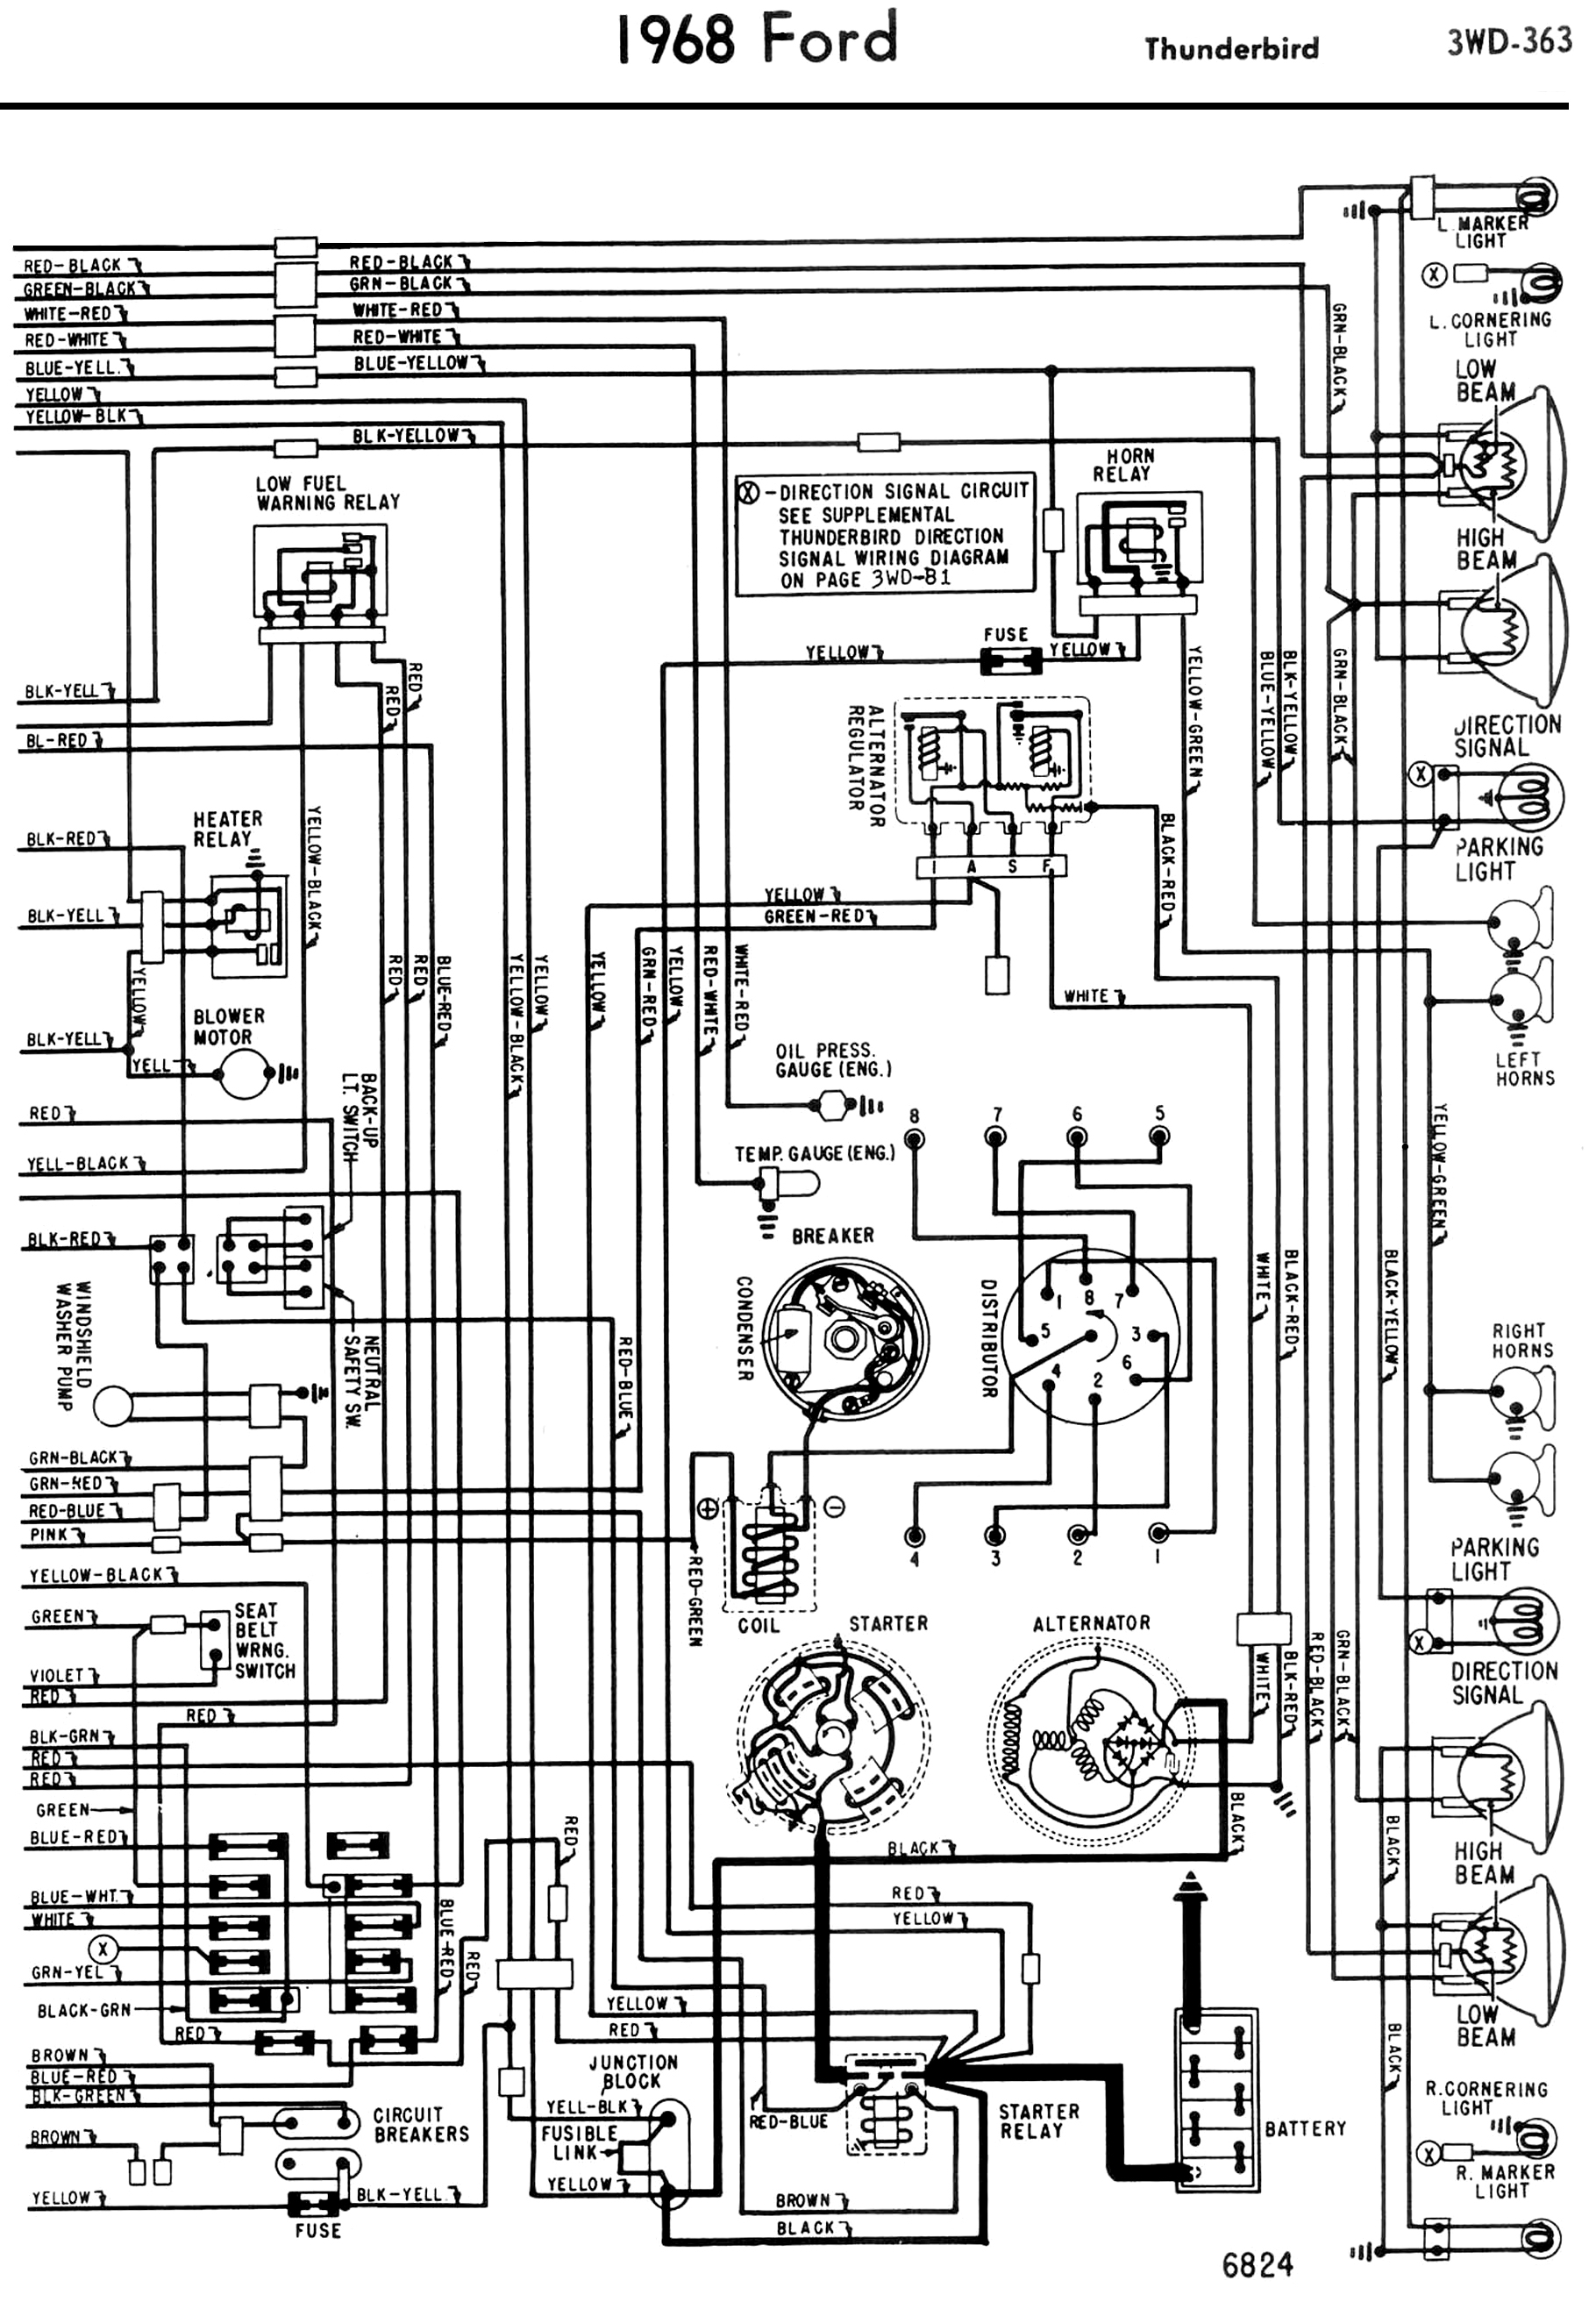 hight resolution of 1968 ford wiring diagram tail lights